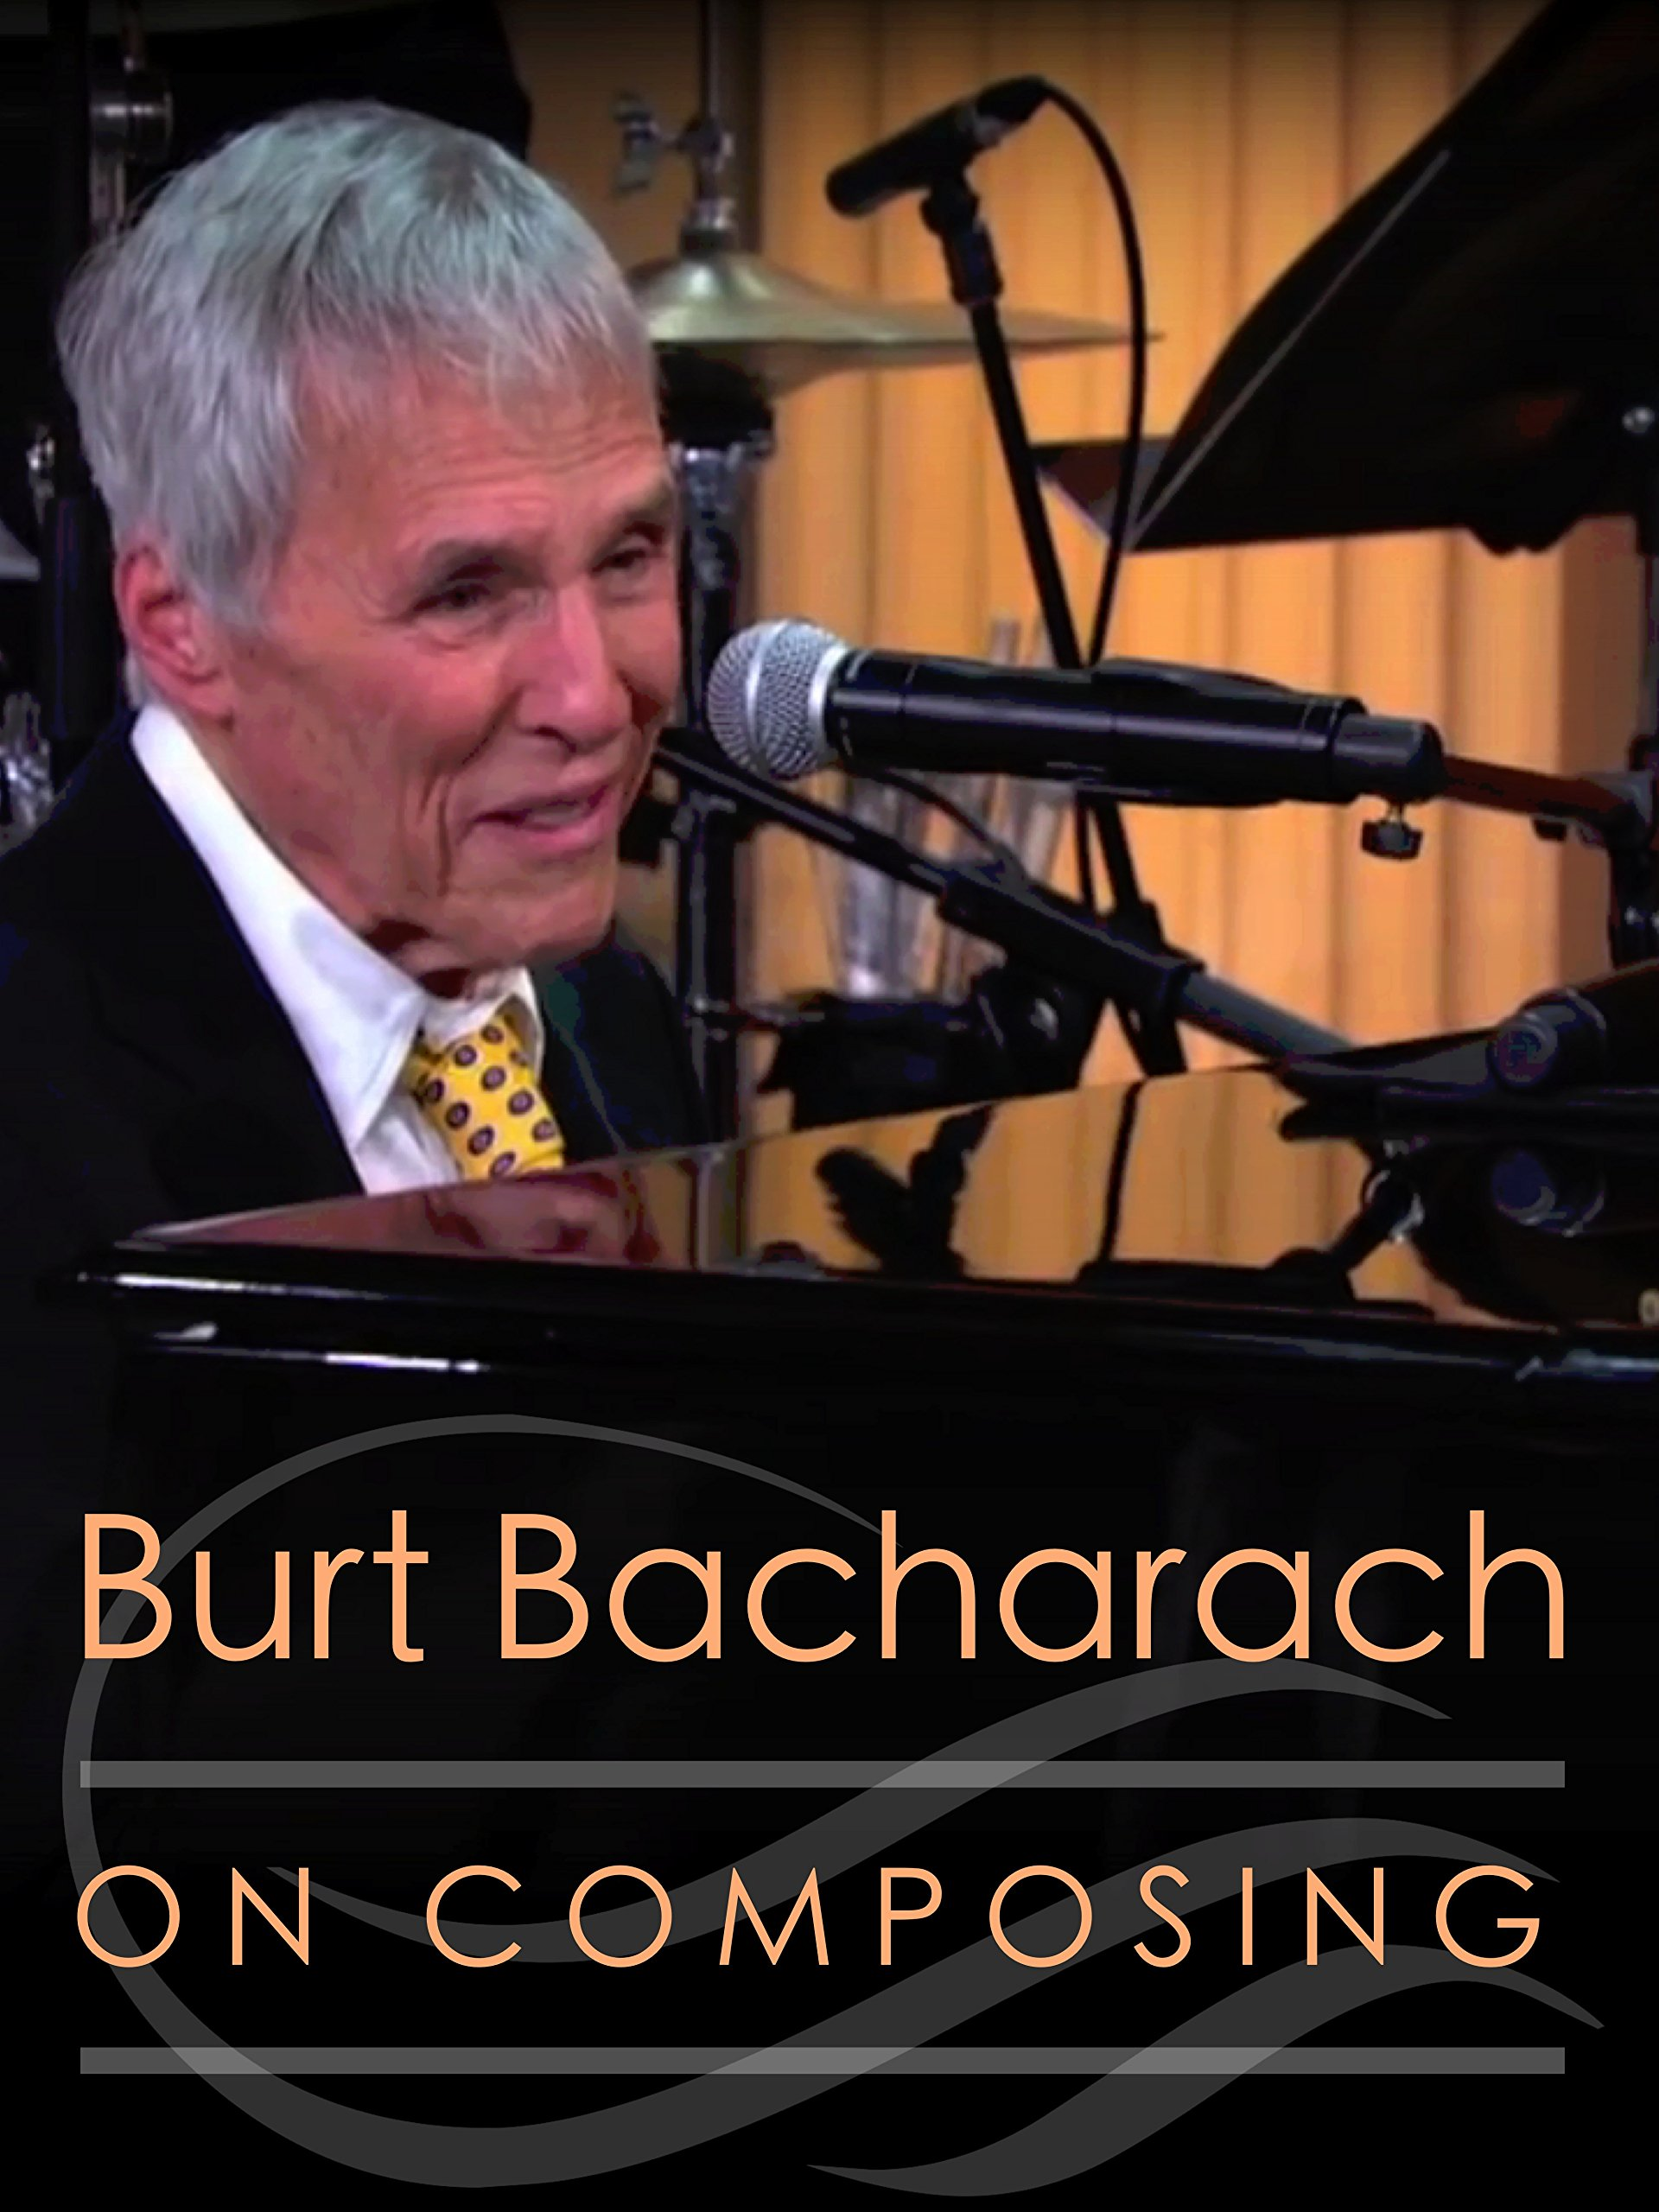 Burt Bacharach: On Composing on Amazon Prime Instant Video UK